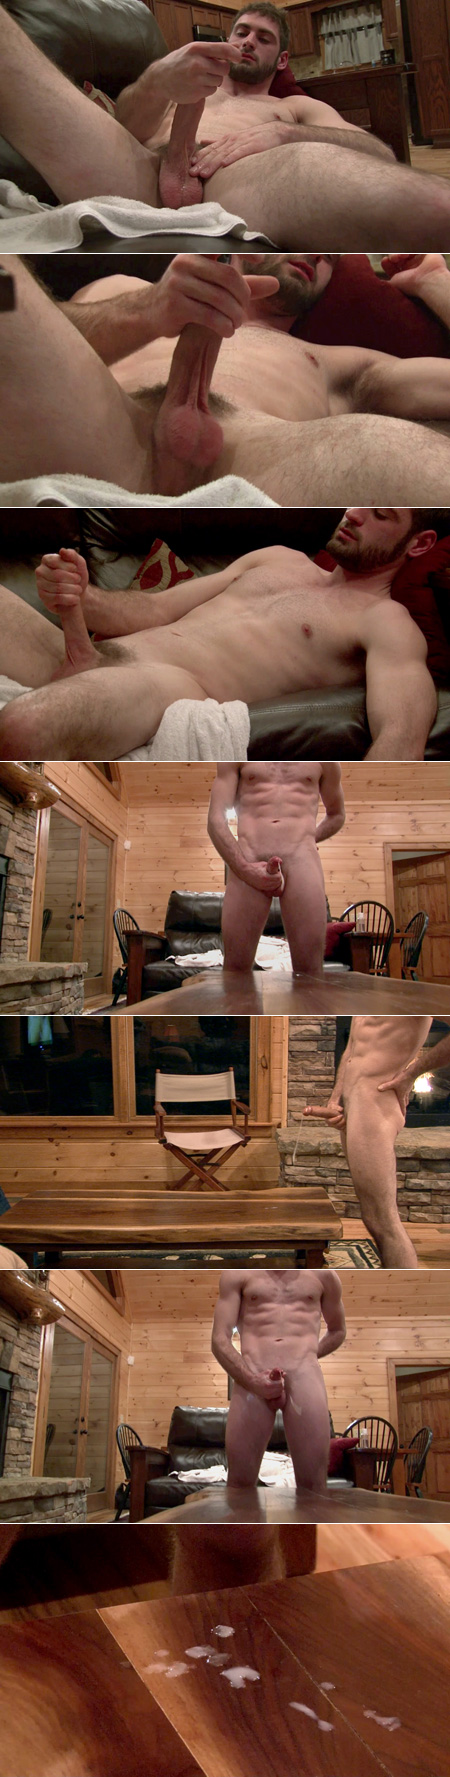 Fit straight guy shooting his load on a wood table in a mountain cabin.